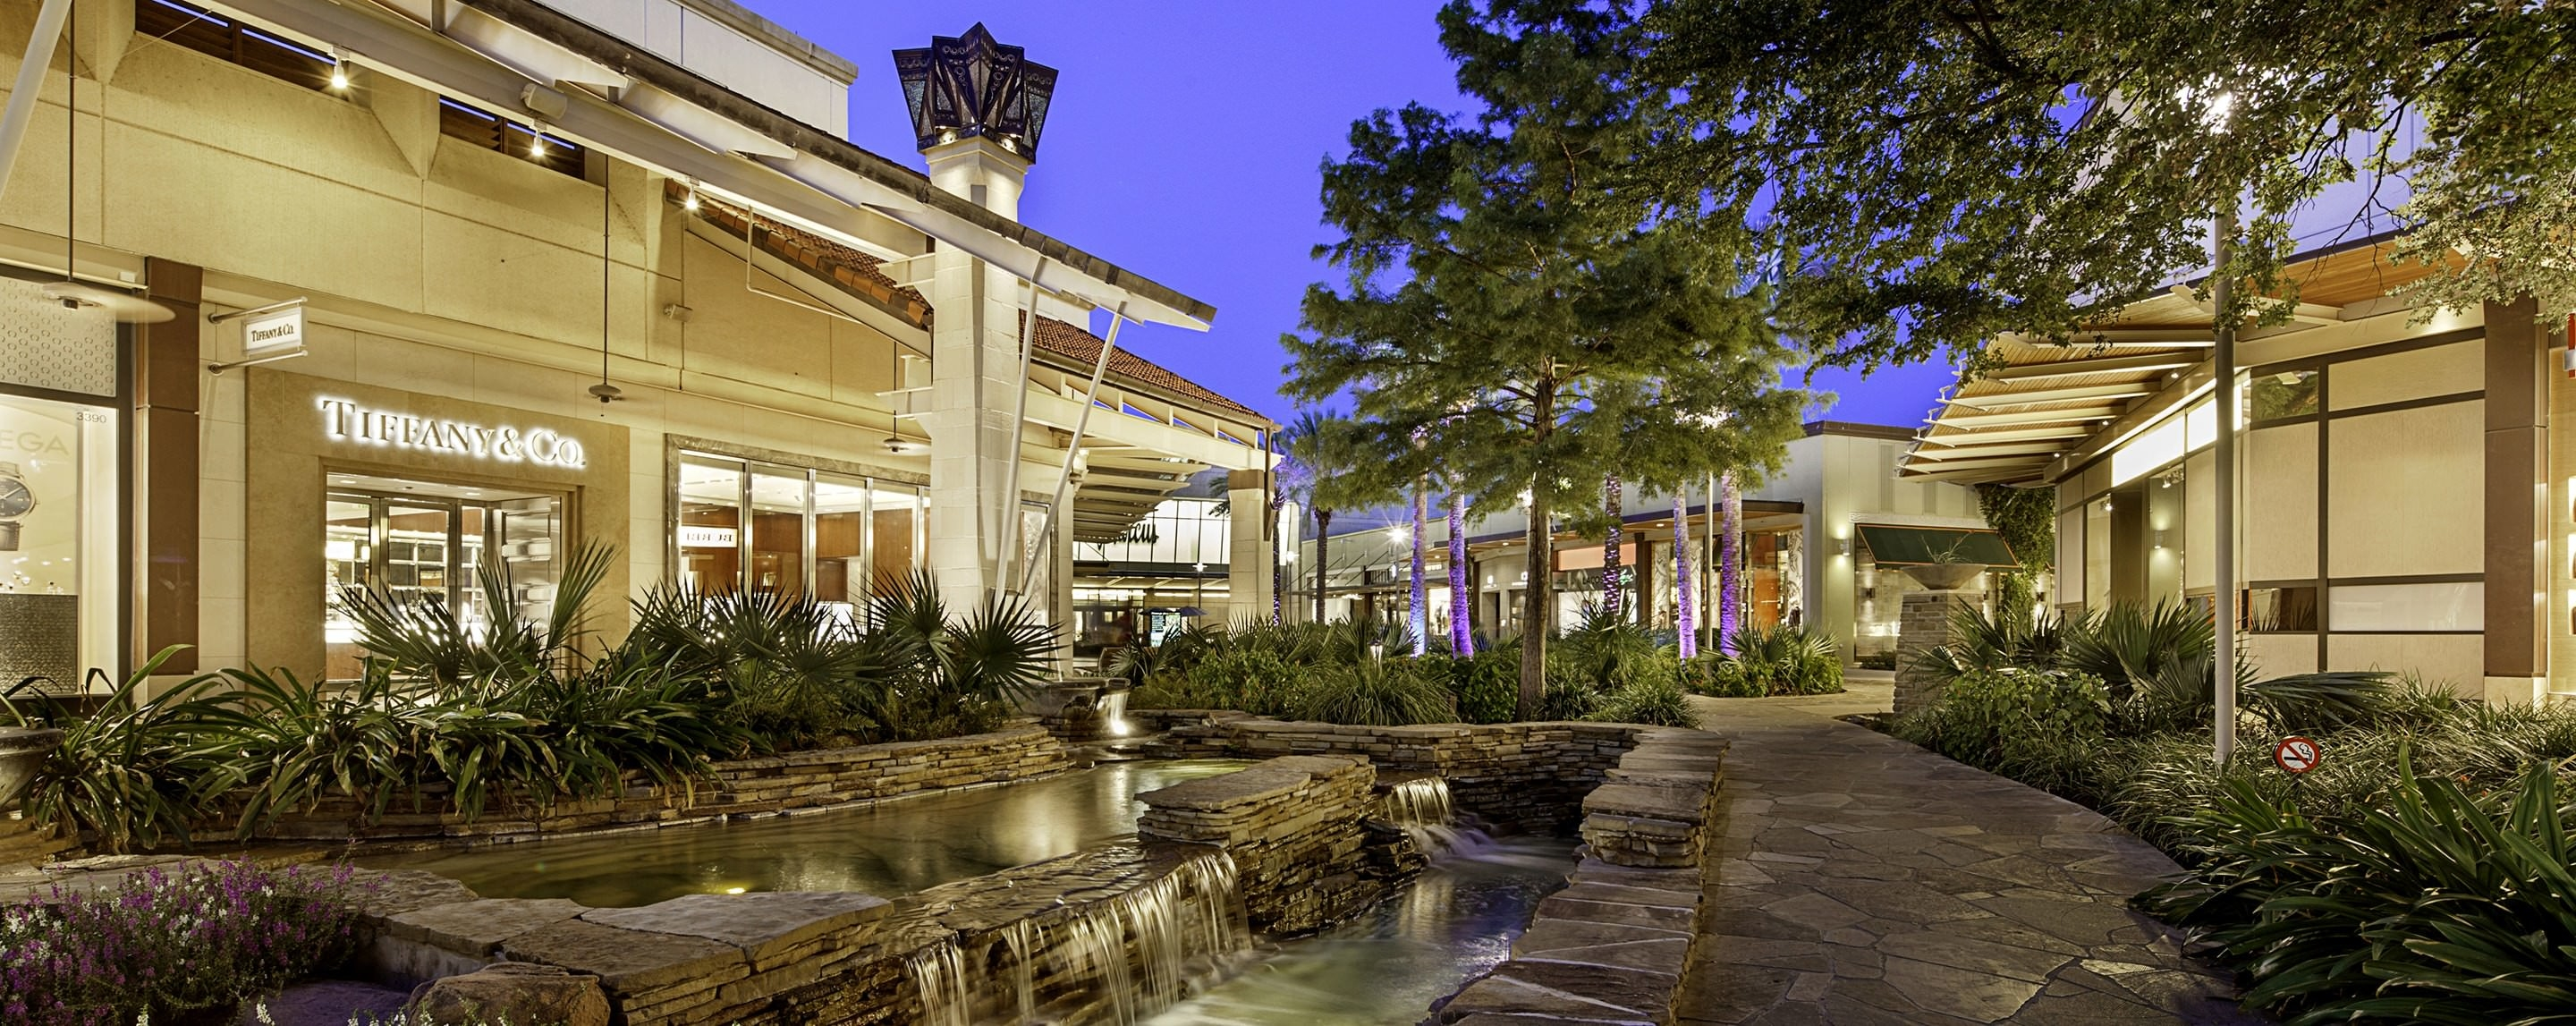 Visit The Shops at La Cantera in San Antonio, TX today! Find more info on the mall hours, address, parking, nearby hotels, and other services offered here.